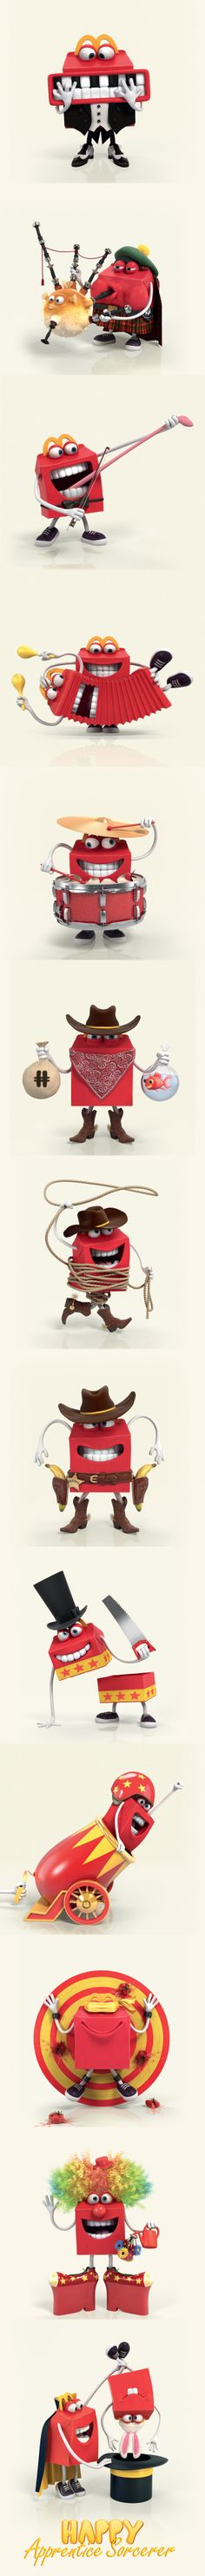 http://www.behance.net/gallery/MC-DONALDS-HAPPY-MEAL-Happy-families-Game/7164653